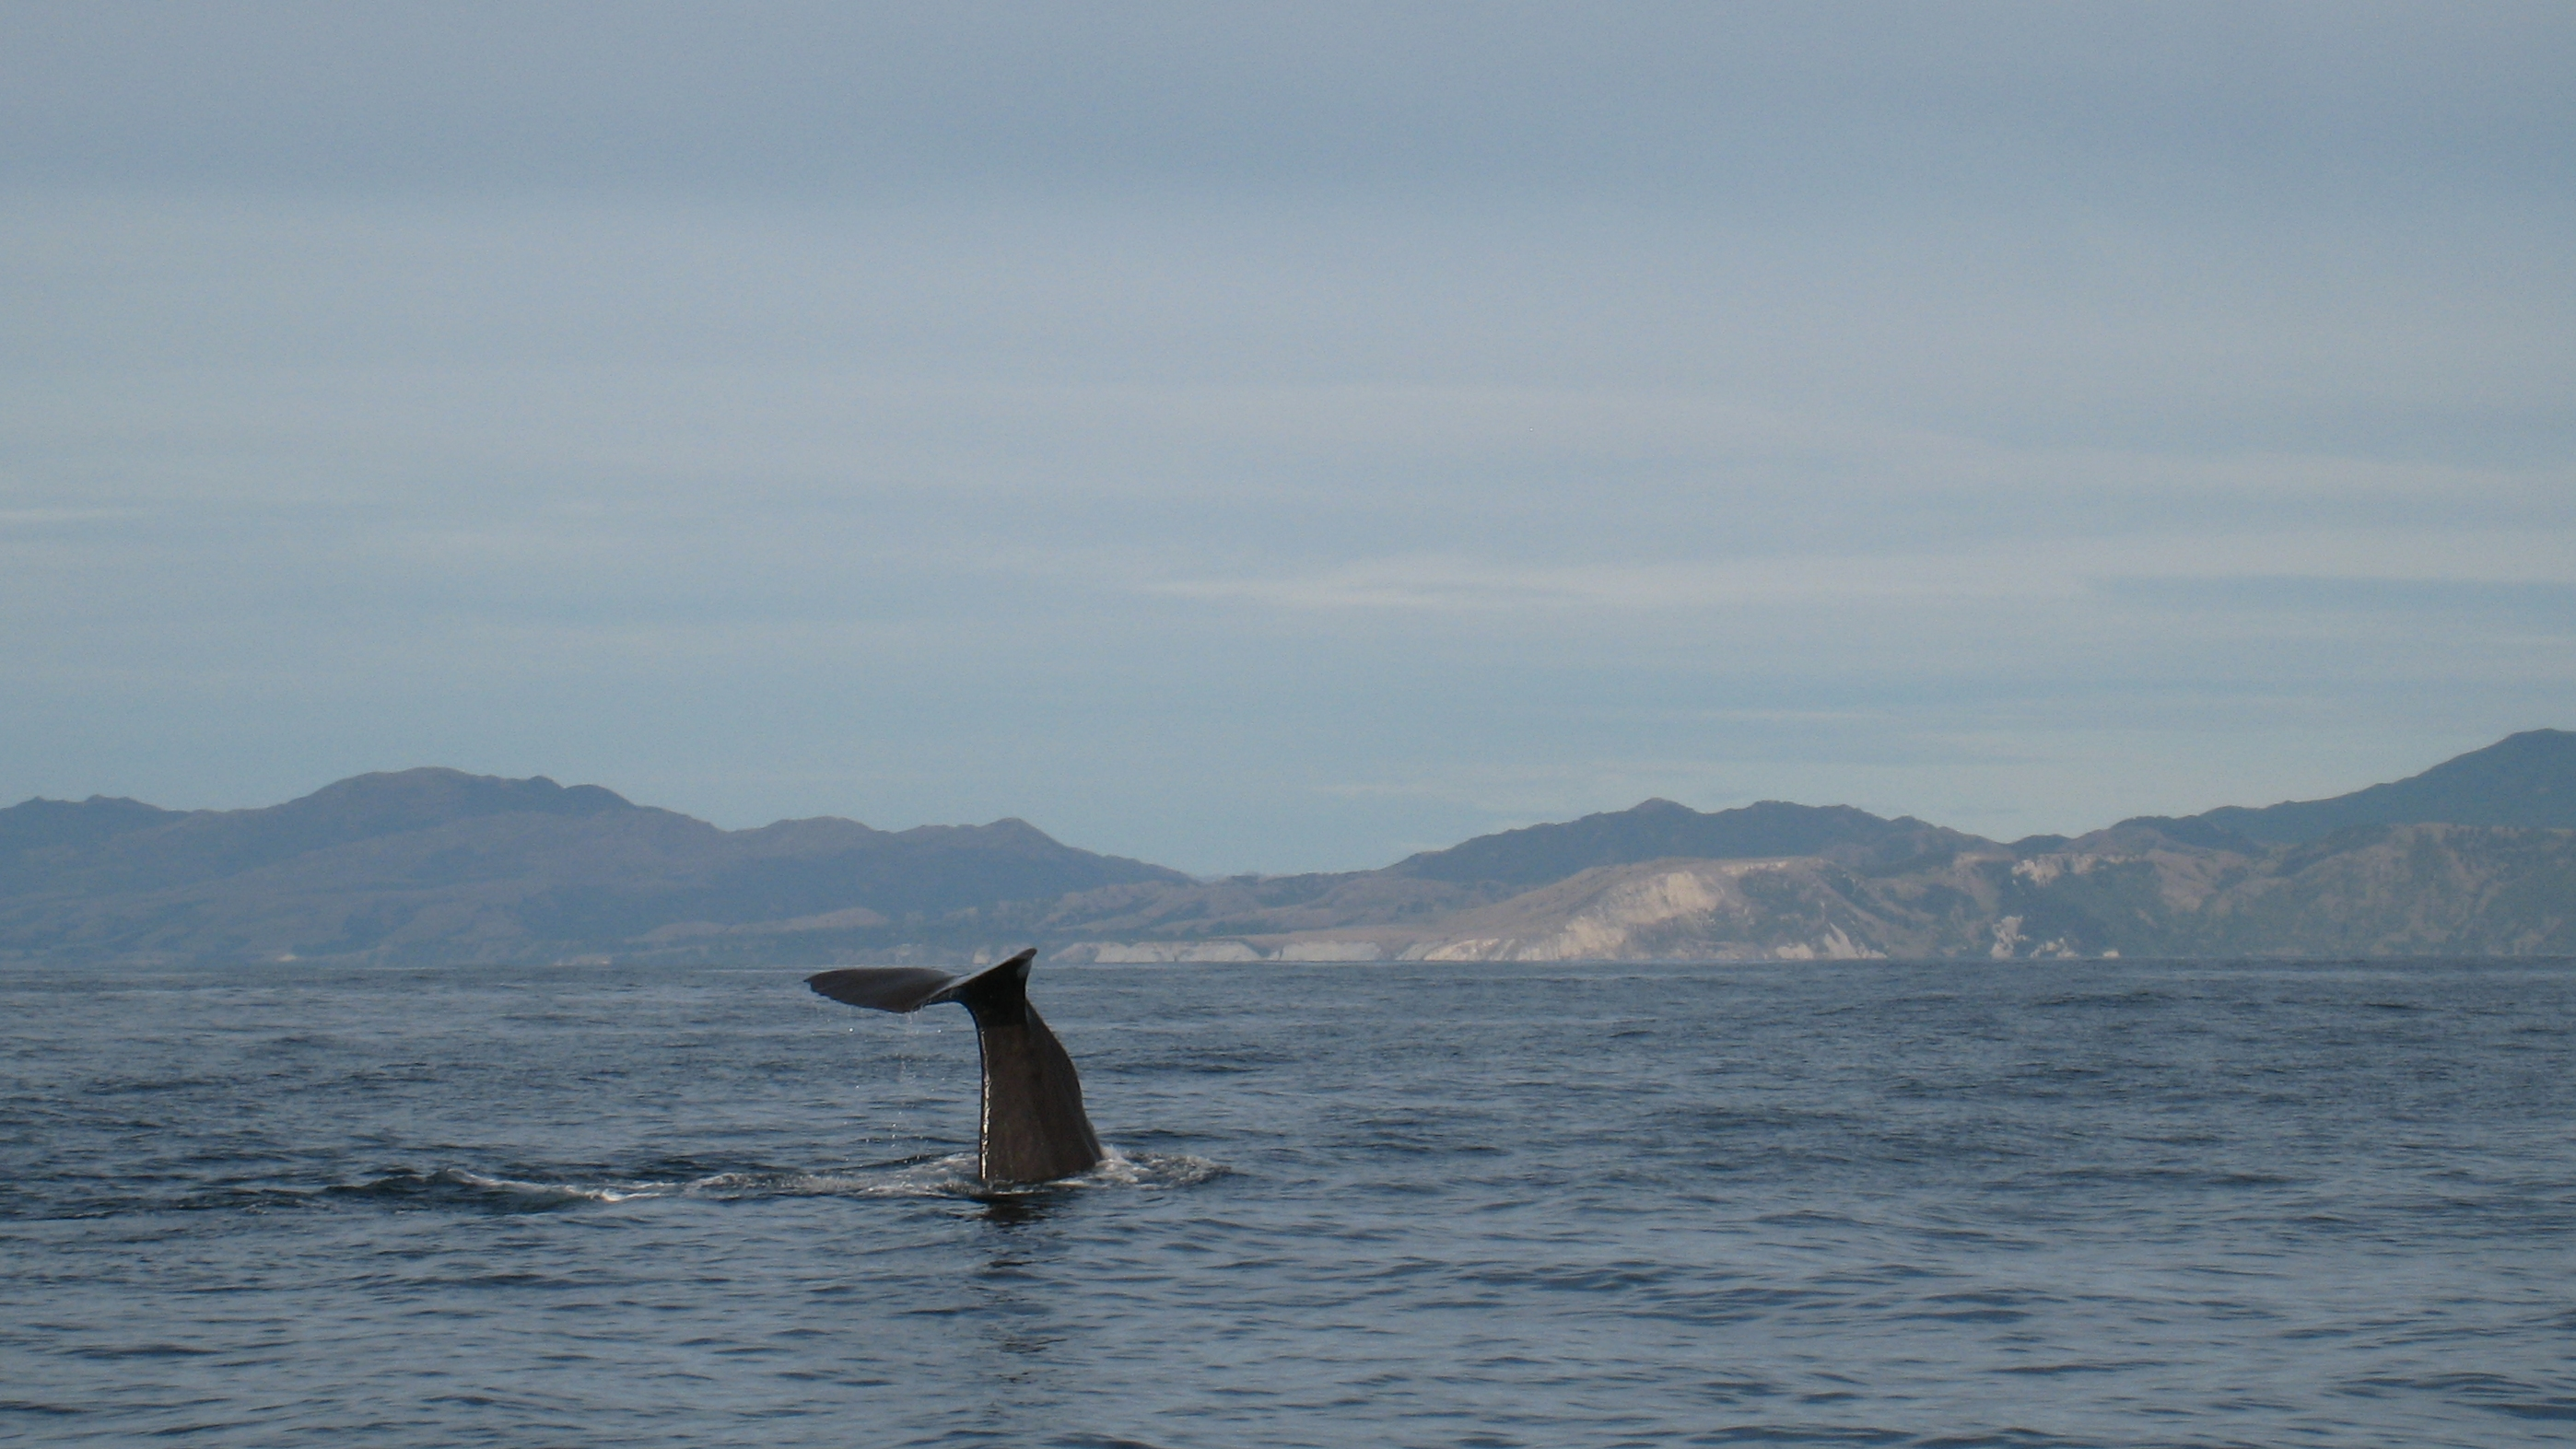 Kaikoura is popular for whale watching and other activities